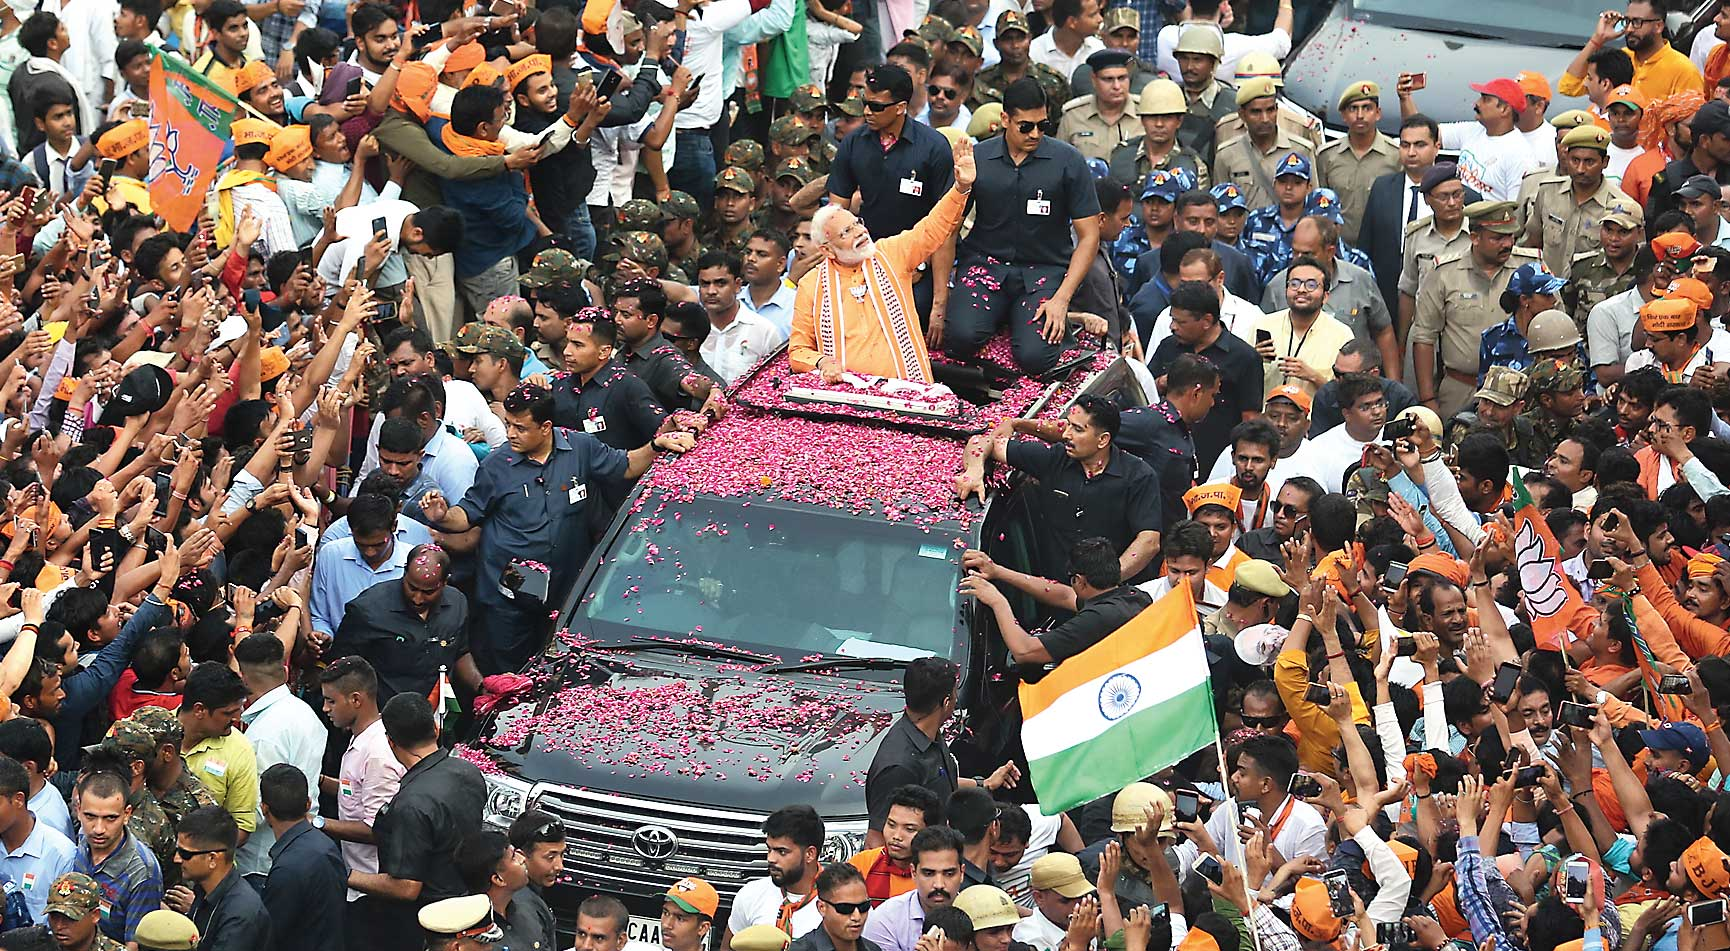 Prime Minister Narendra Modi waves to the crowd during a political campaign road show in Varanasi, on Thursday.